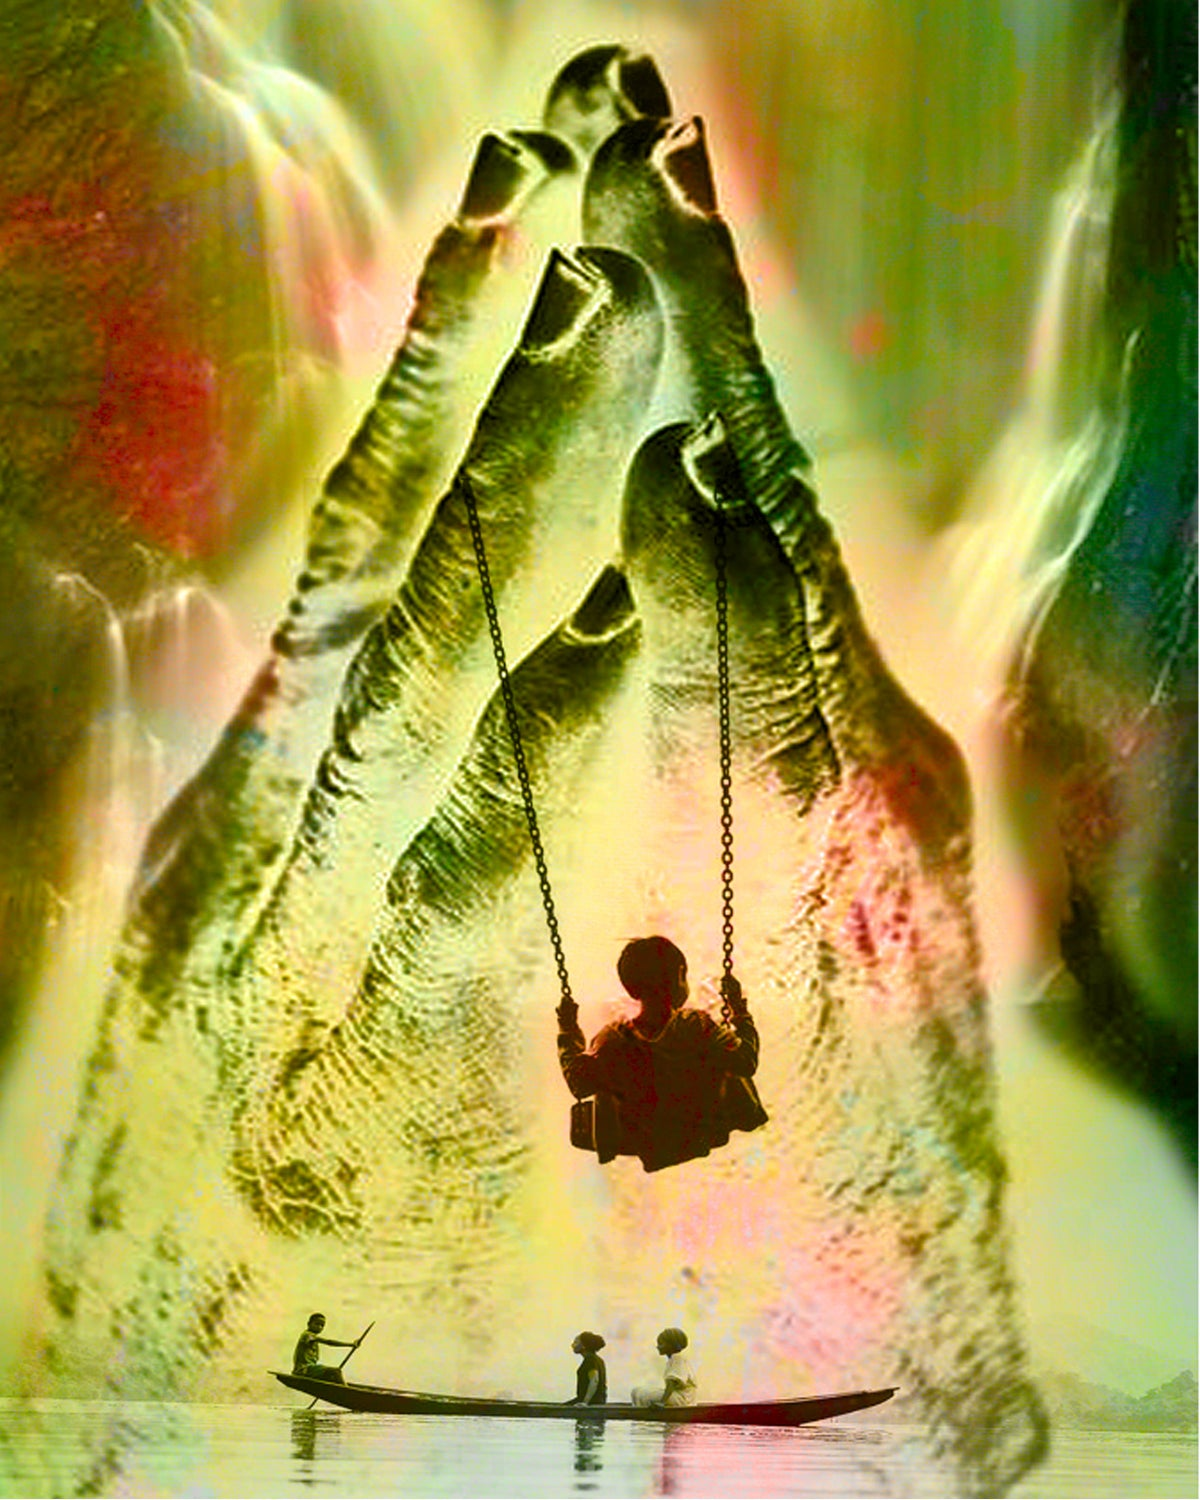 Image of Transformation - Swinging into the Light